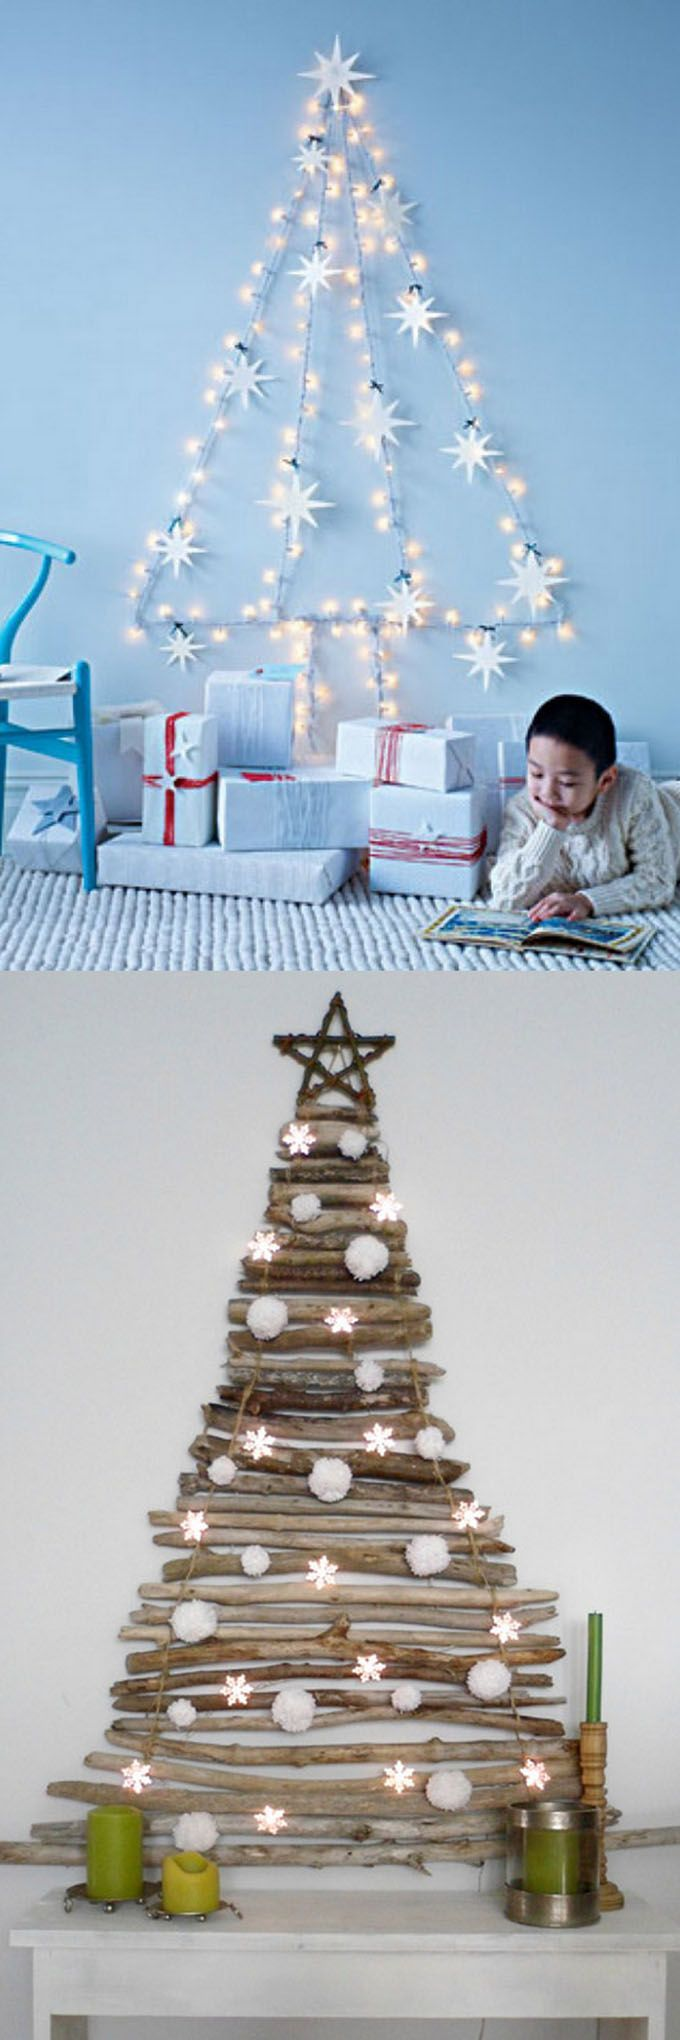 25 Best Ideas About Creative Christmas Trees On Pinterest